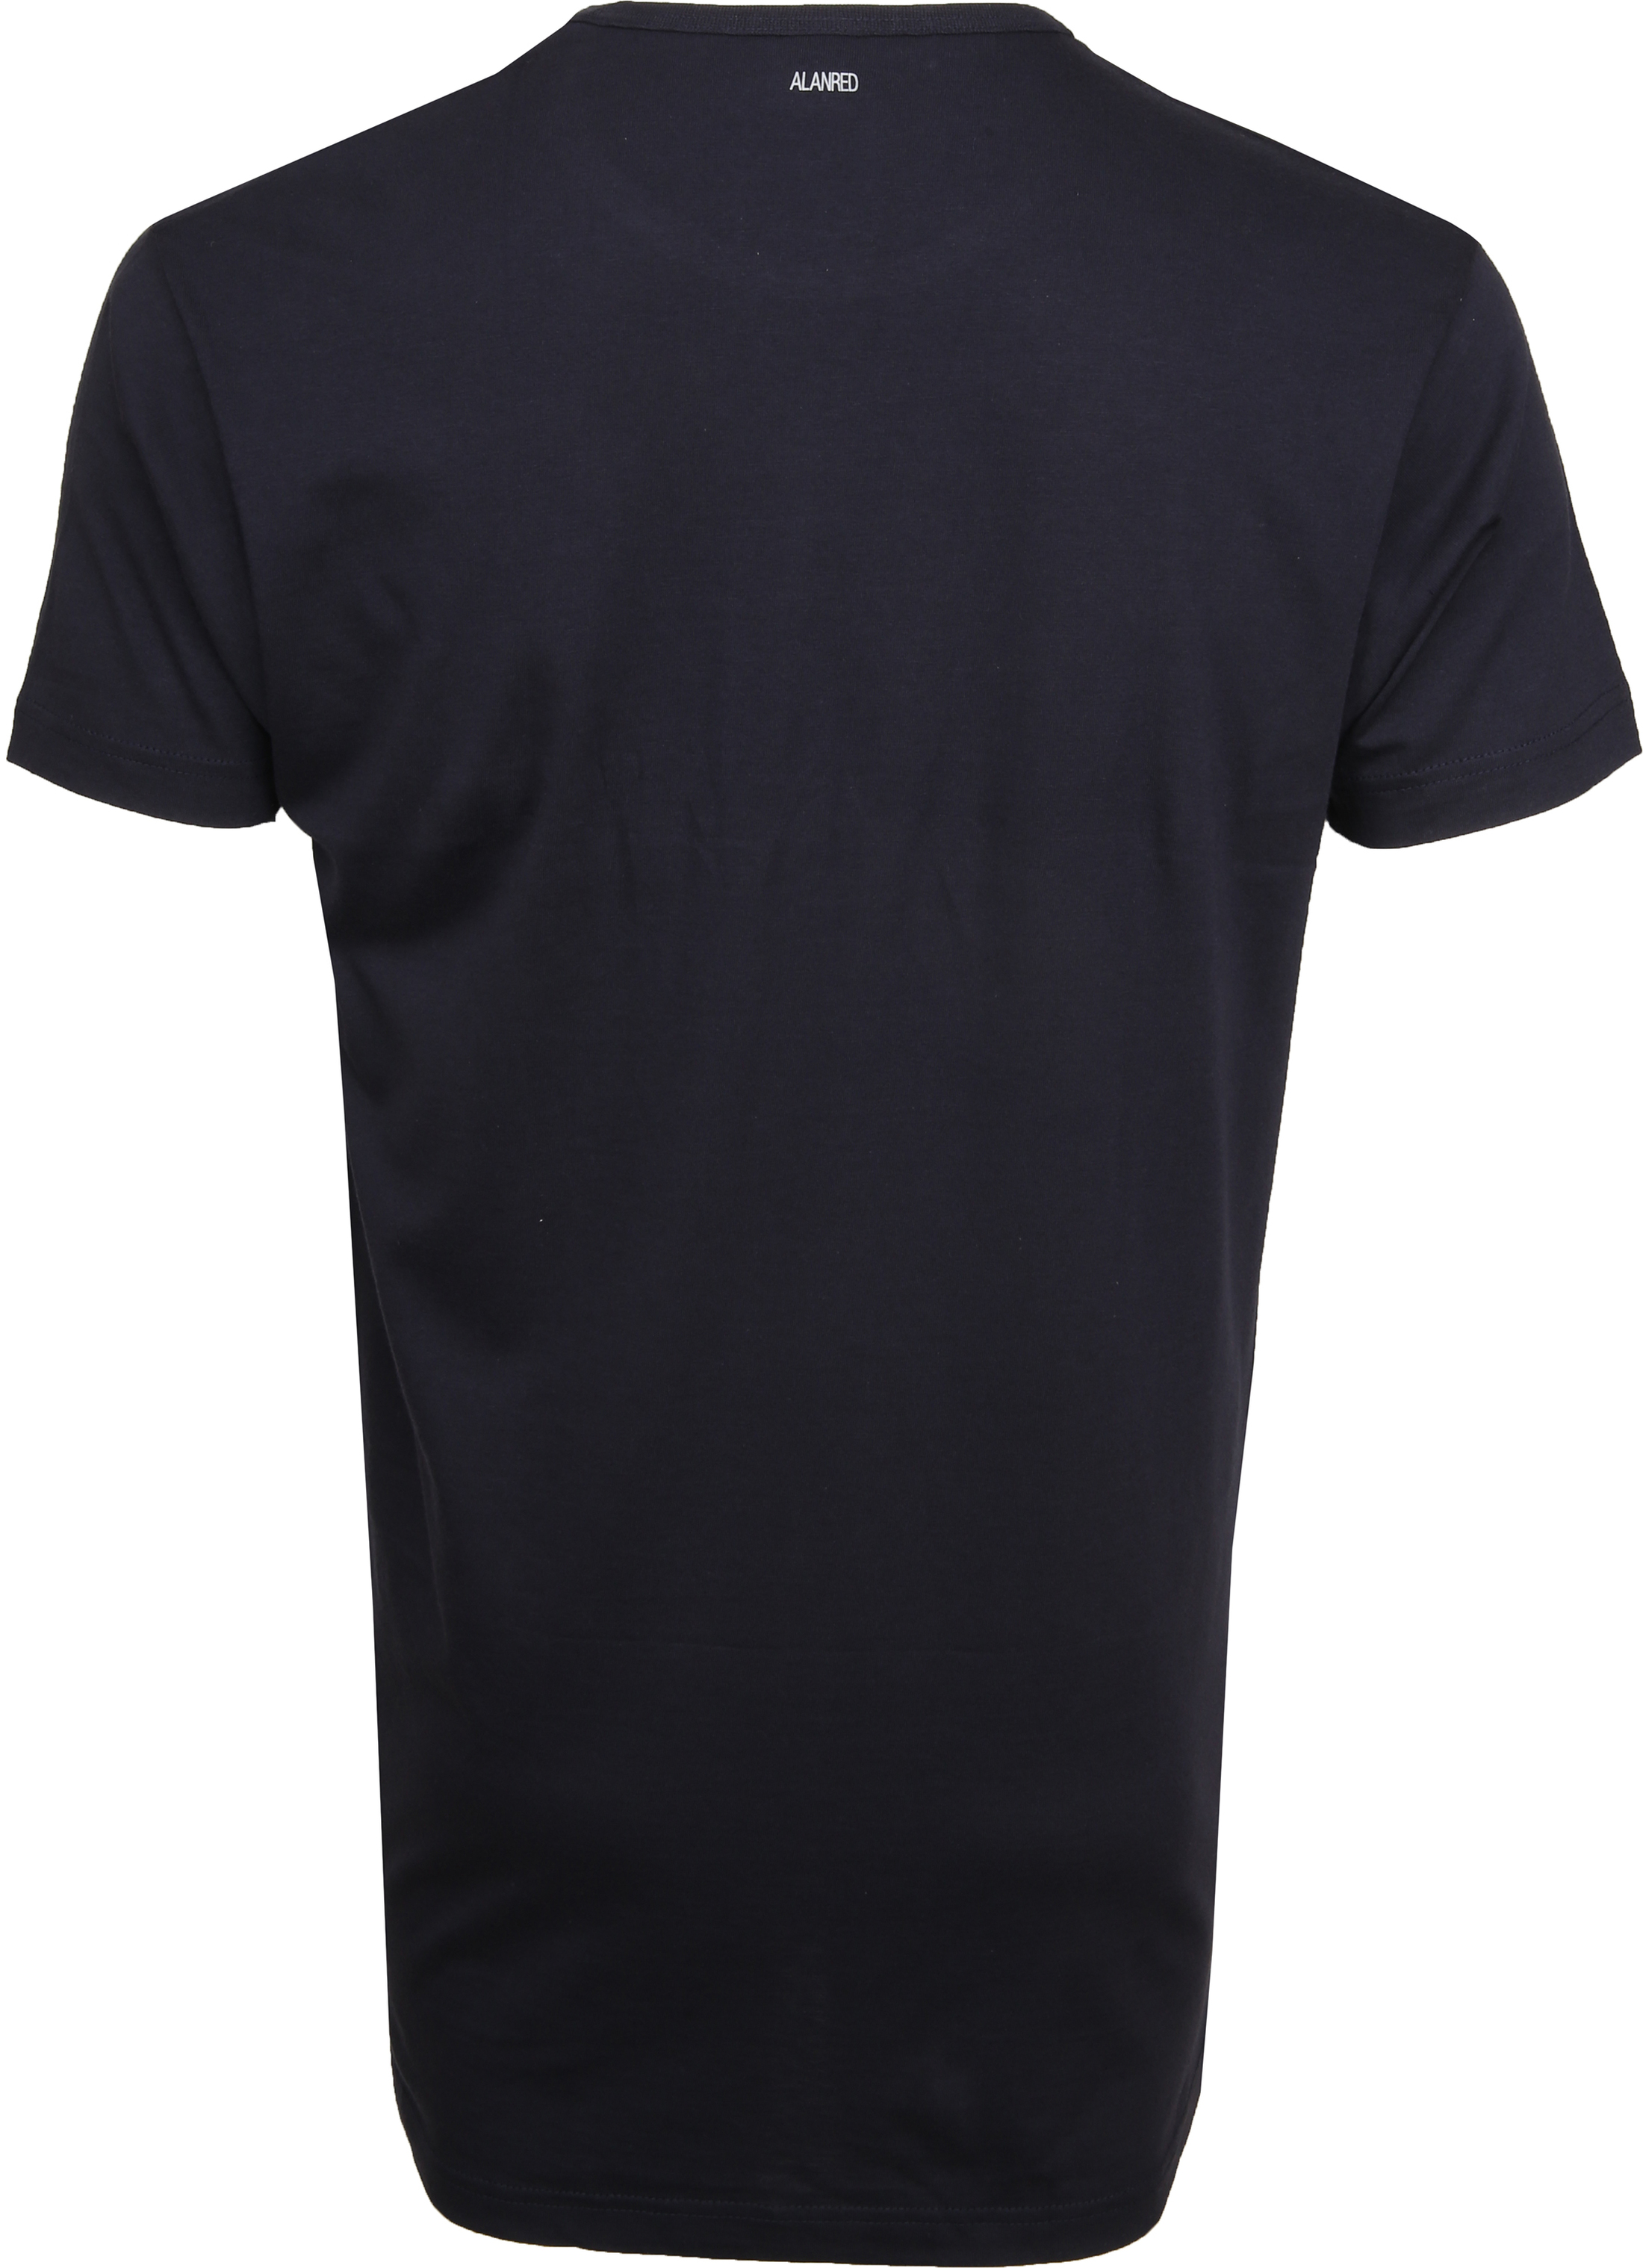 Alan Red Extra Long T-Shirts Derby Navy (2-Pack) foto 3